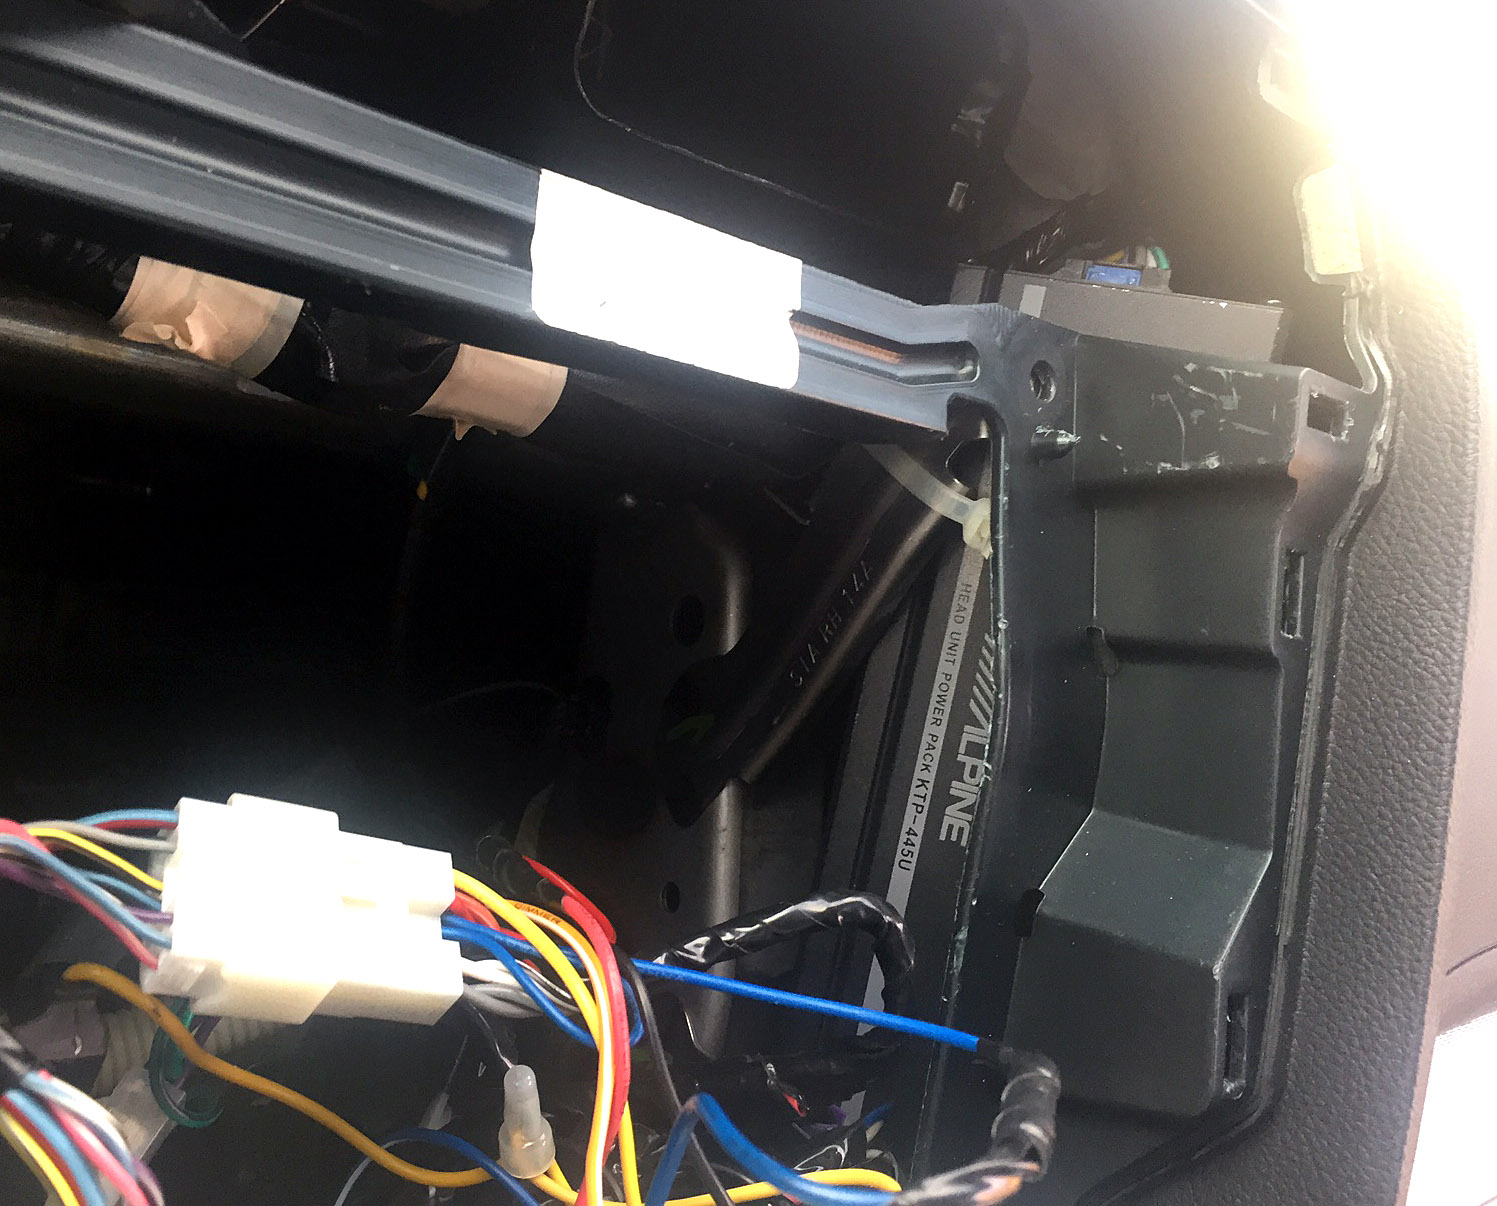 alpine ktp 445u power pack wiring diagram sv650 k3 general data powerpack amp installation in 2015 outback page 3 rh subaruoutback org harness